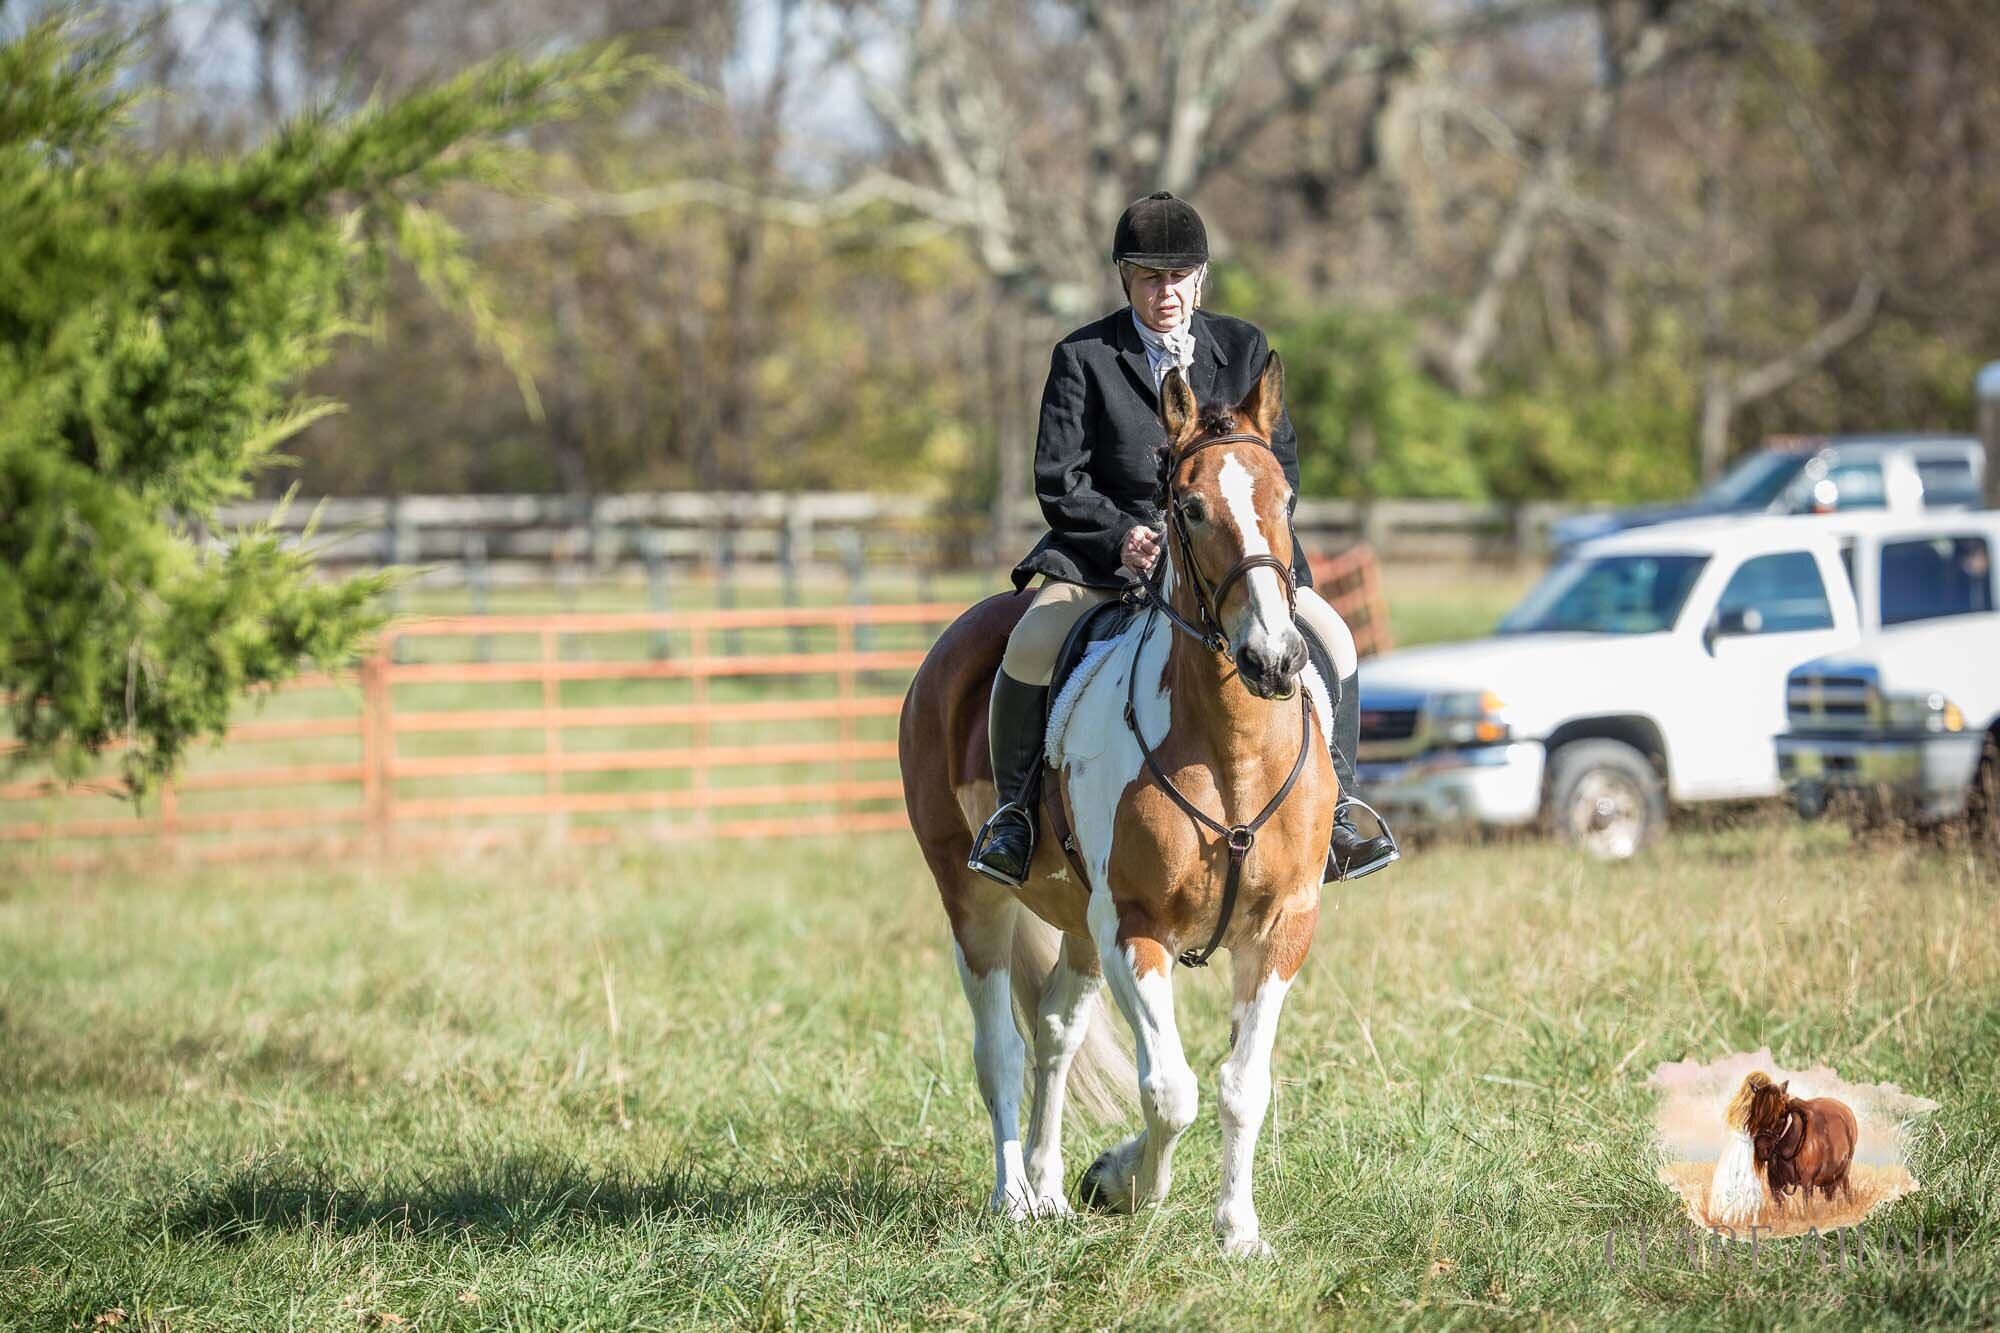 equine_photographer_potomac_md_equine_photographer_middleburg_VA_equine_portraiture_loudon_county_VA-2809.jpg